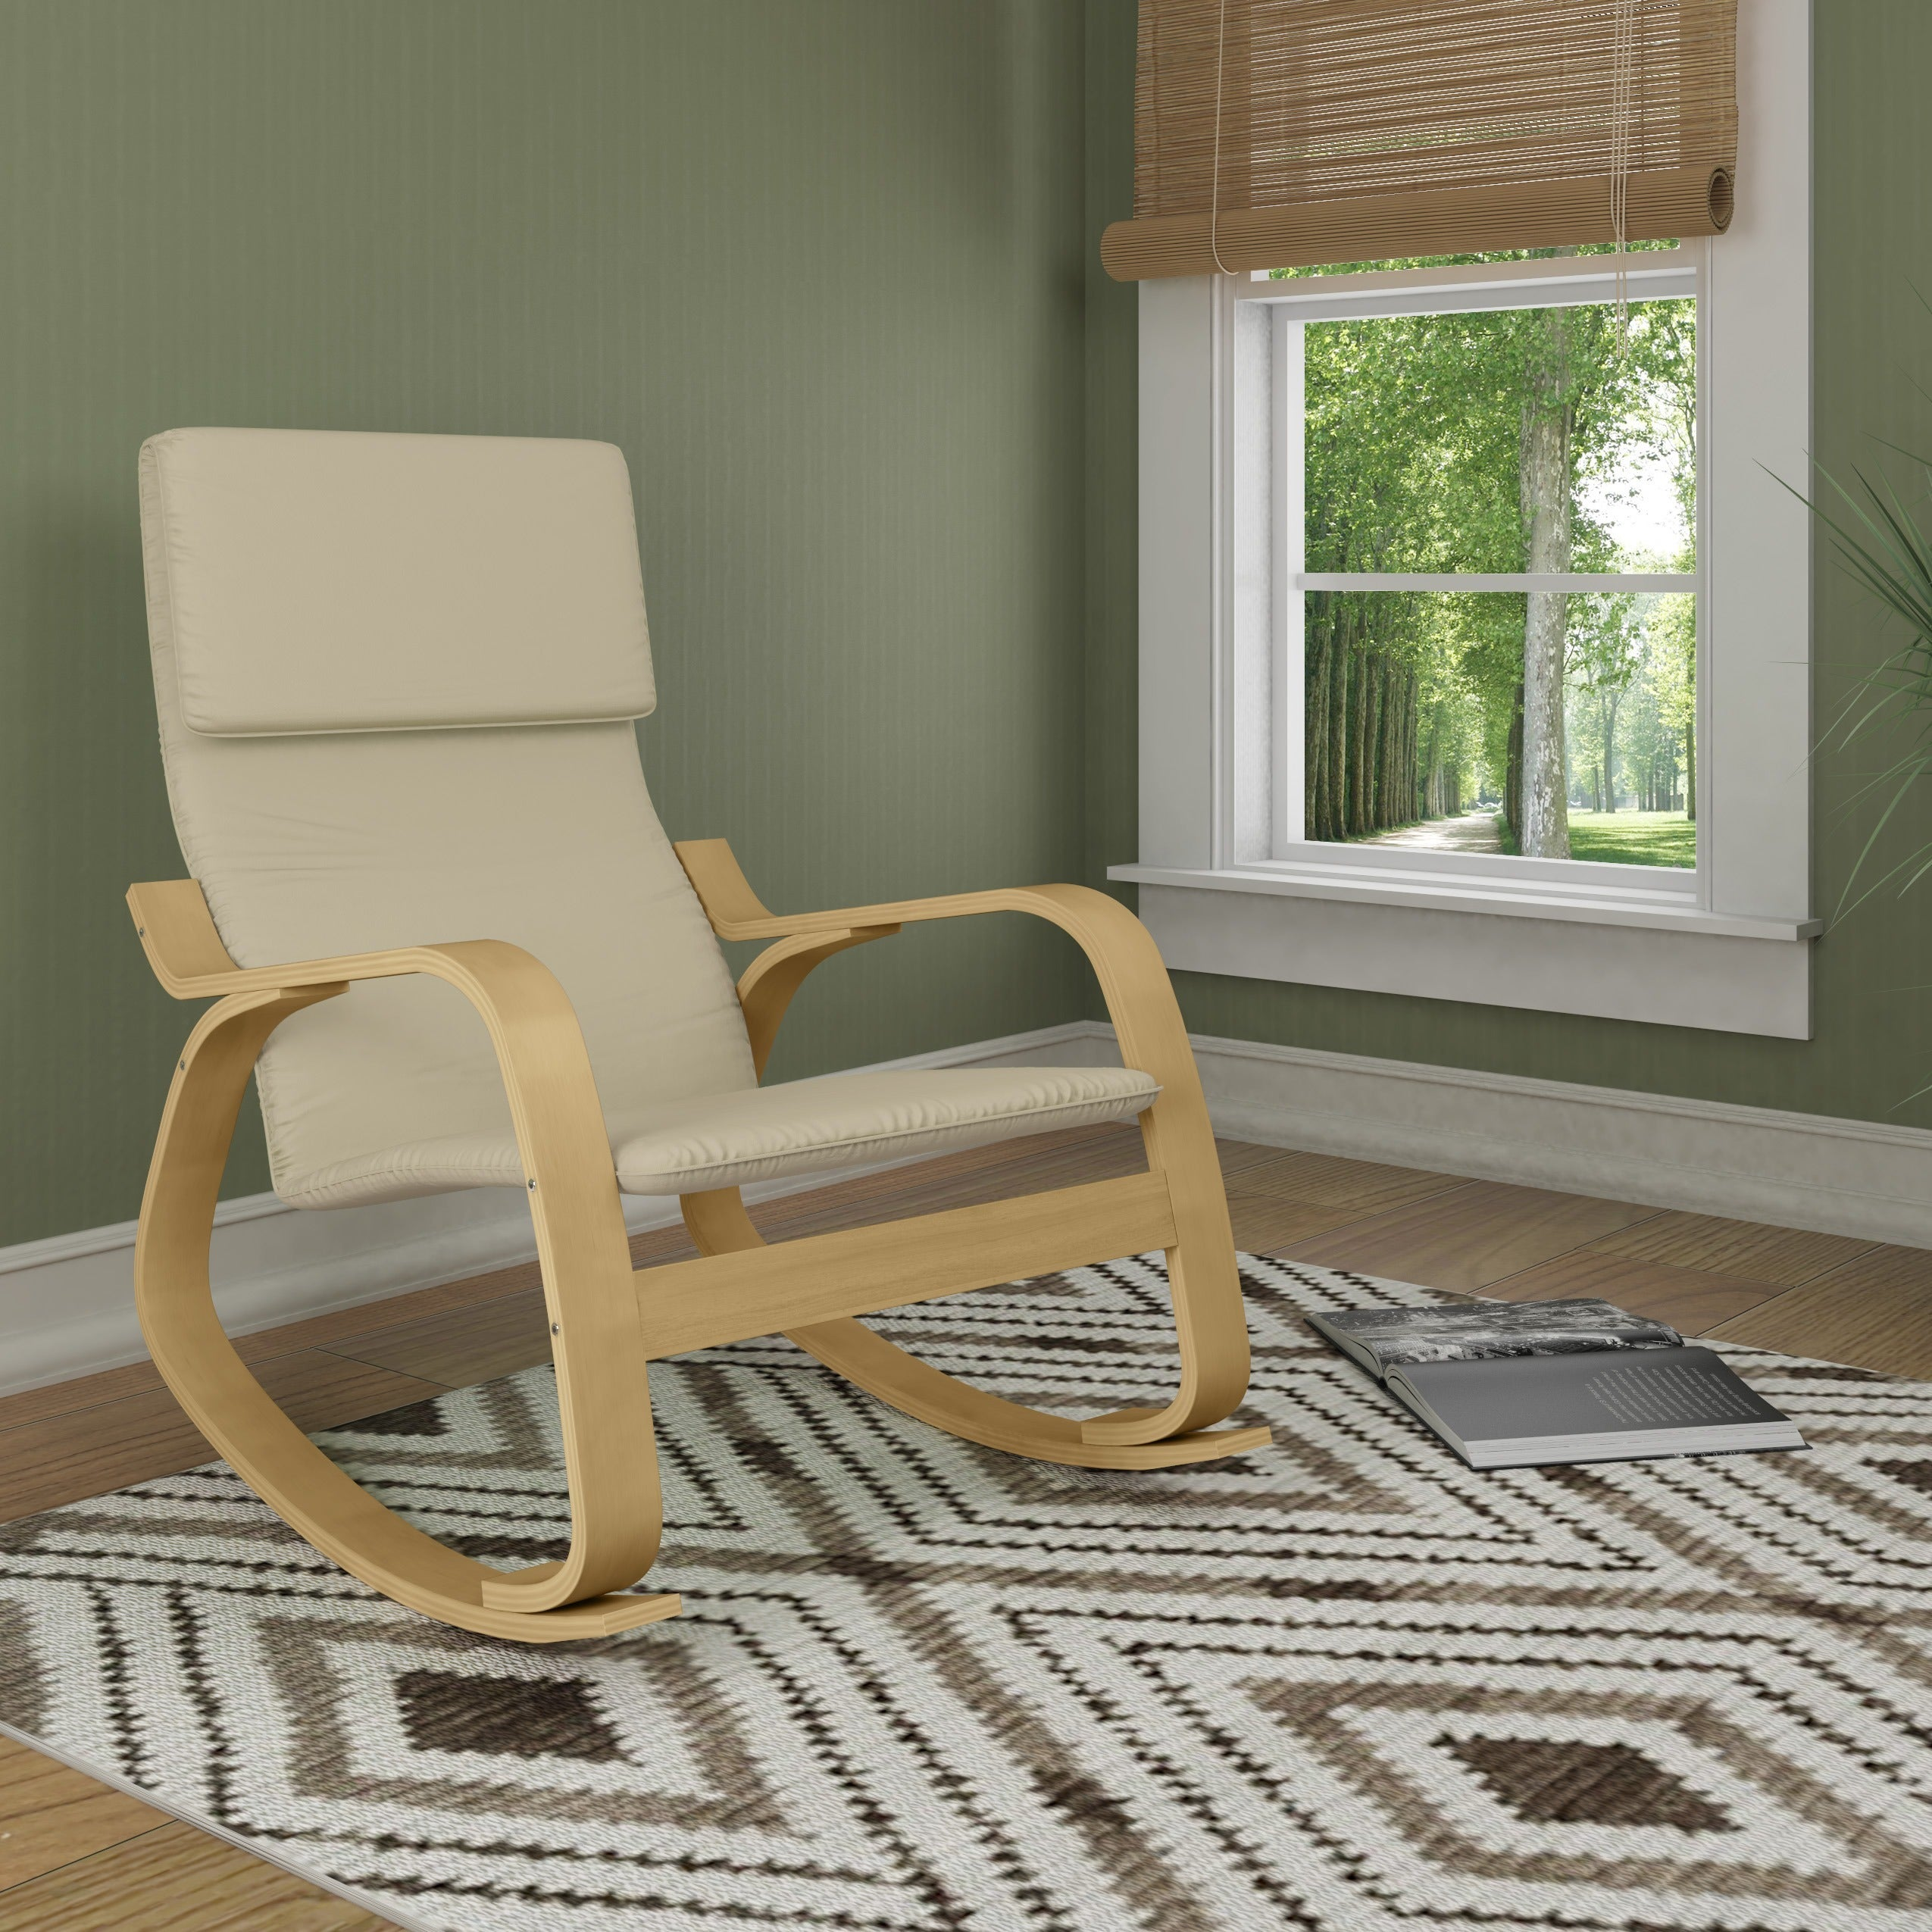 corliving aquios bentwood contemporary rocking chair free